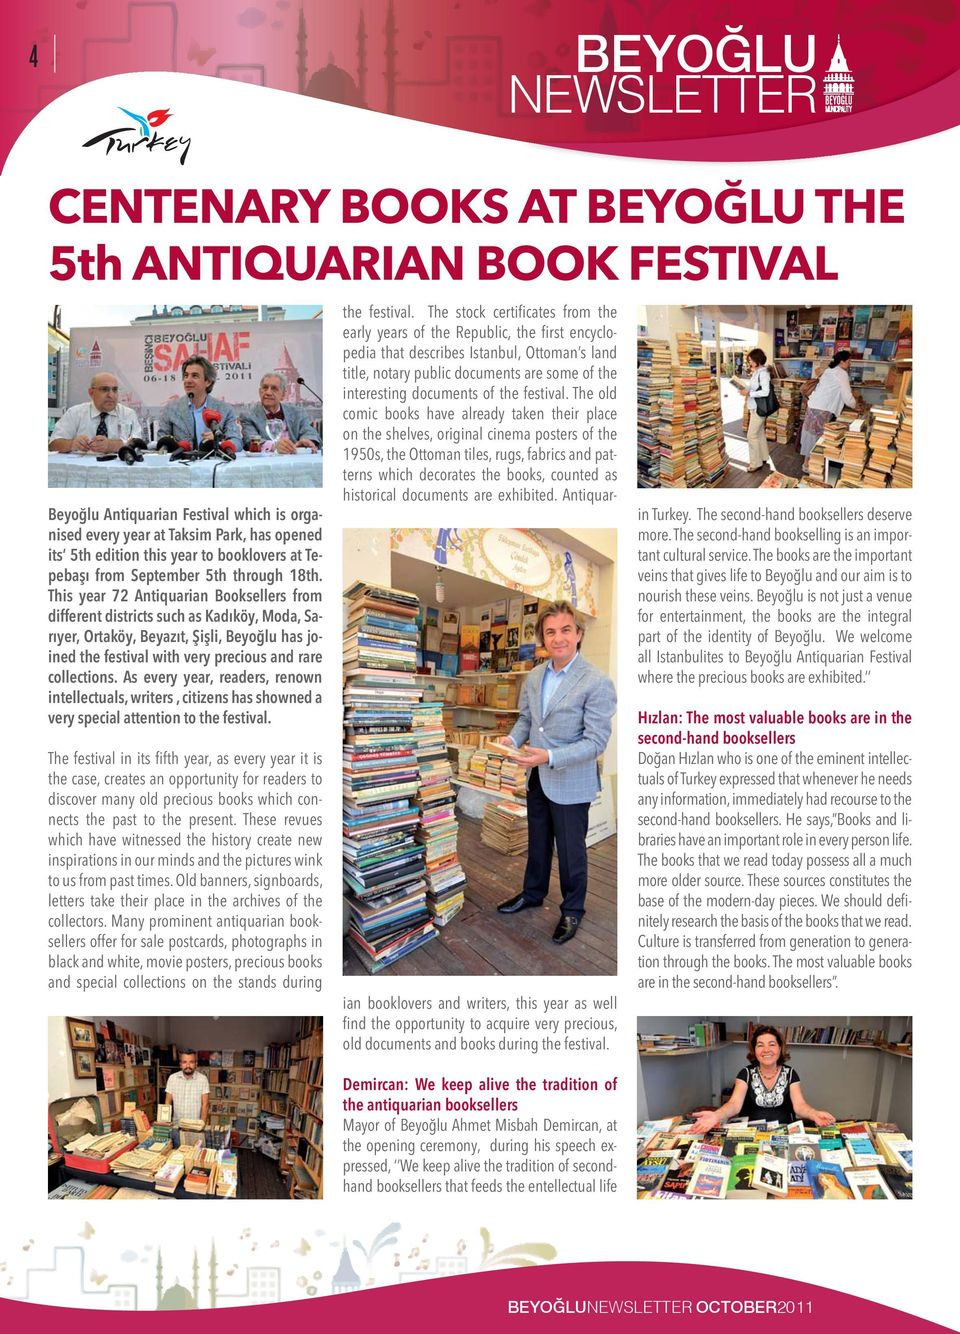 This year 72 Antiquarian Booksellers from different districts such as Kadıköy, Moda, Sarıyer, Ortaköy, Beyazıt, Şişli, Beyoğlu has joined the festival with very precious and rare collections.